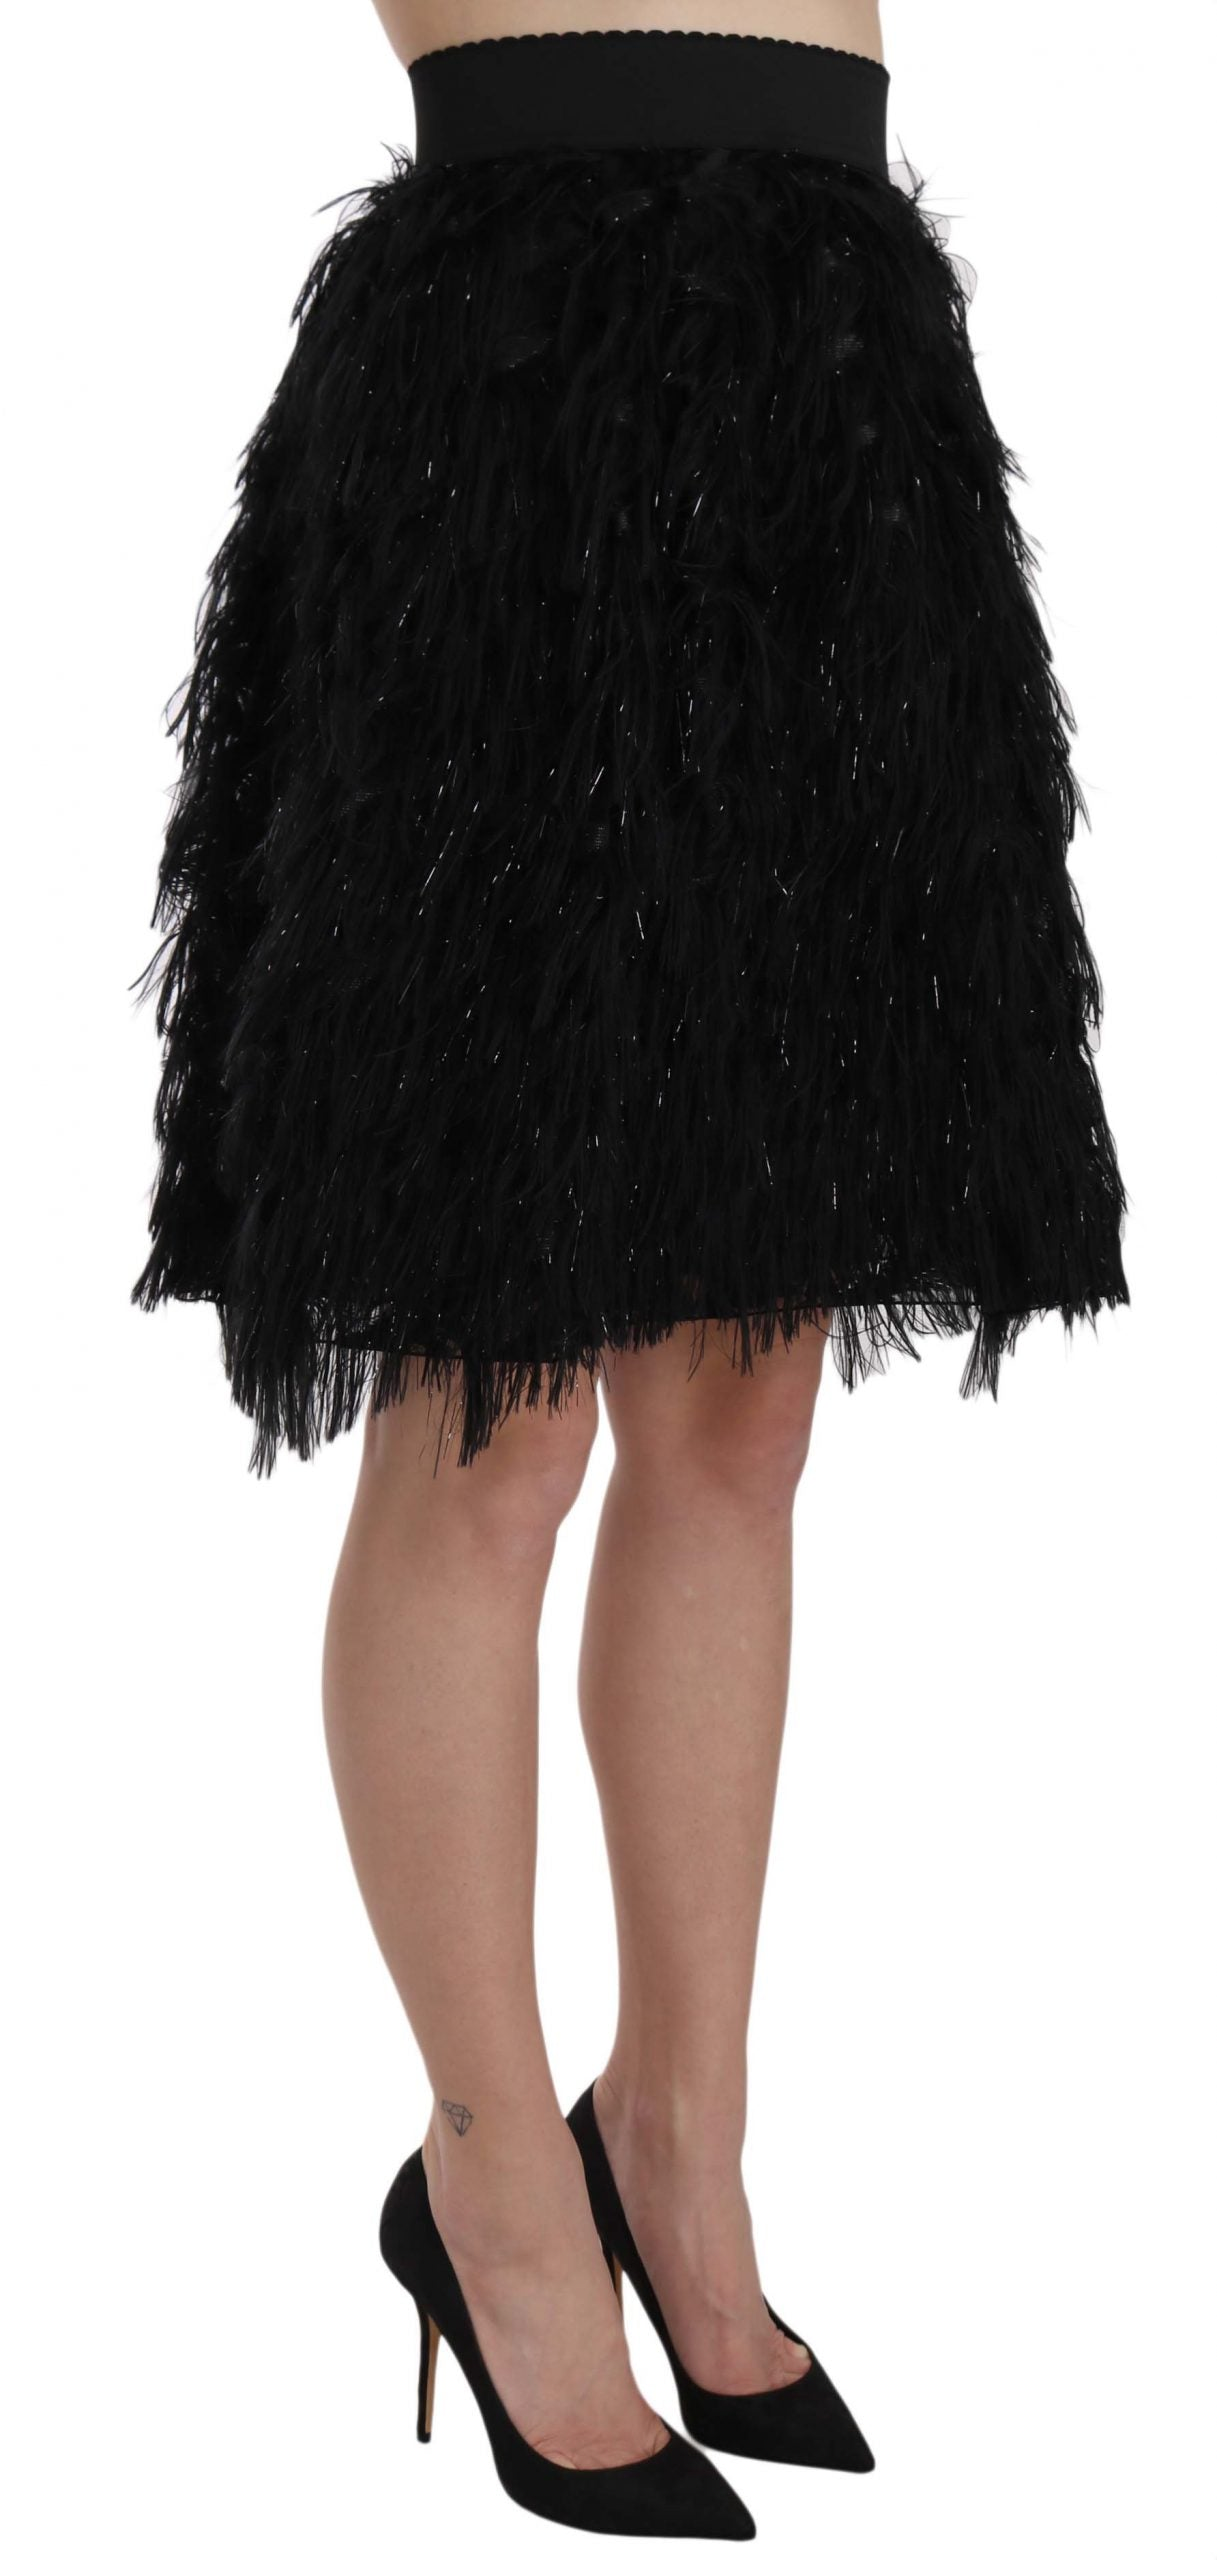 Black Fringe Metallic Mini A-line Skirt